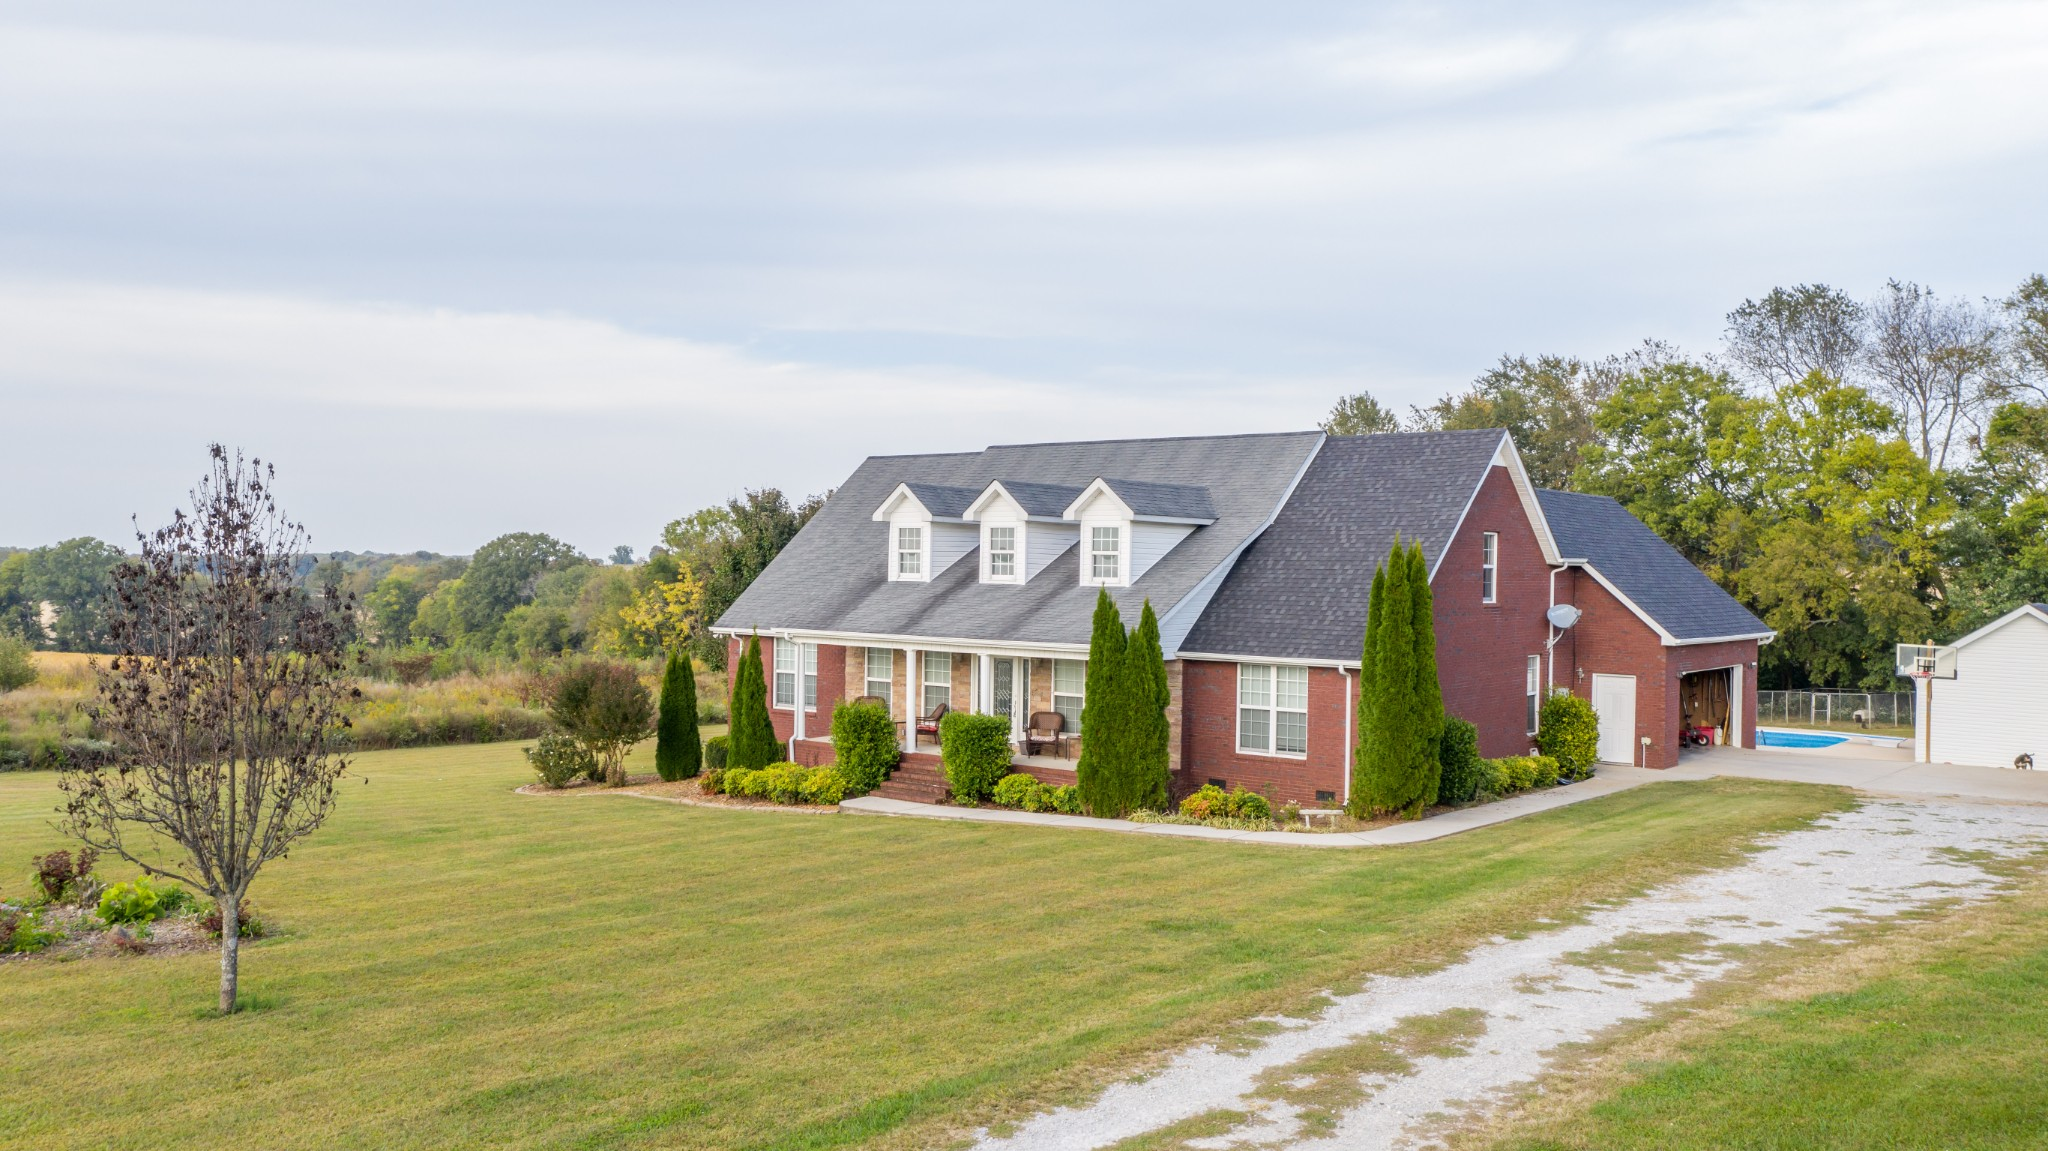 1231 Buncombe Rd Property Photo - Belvidere, TN real estate listing